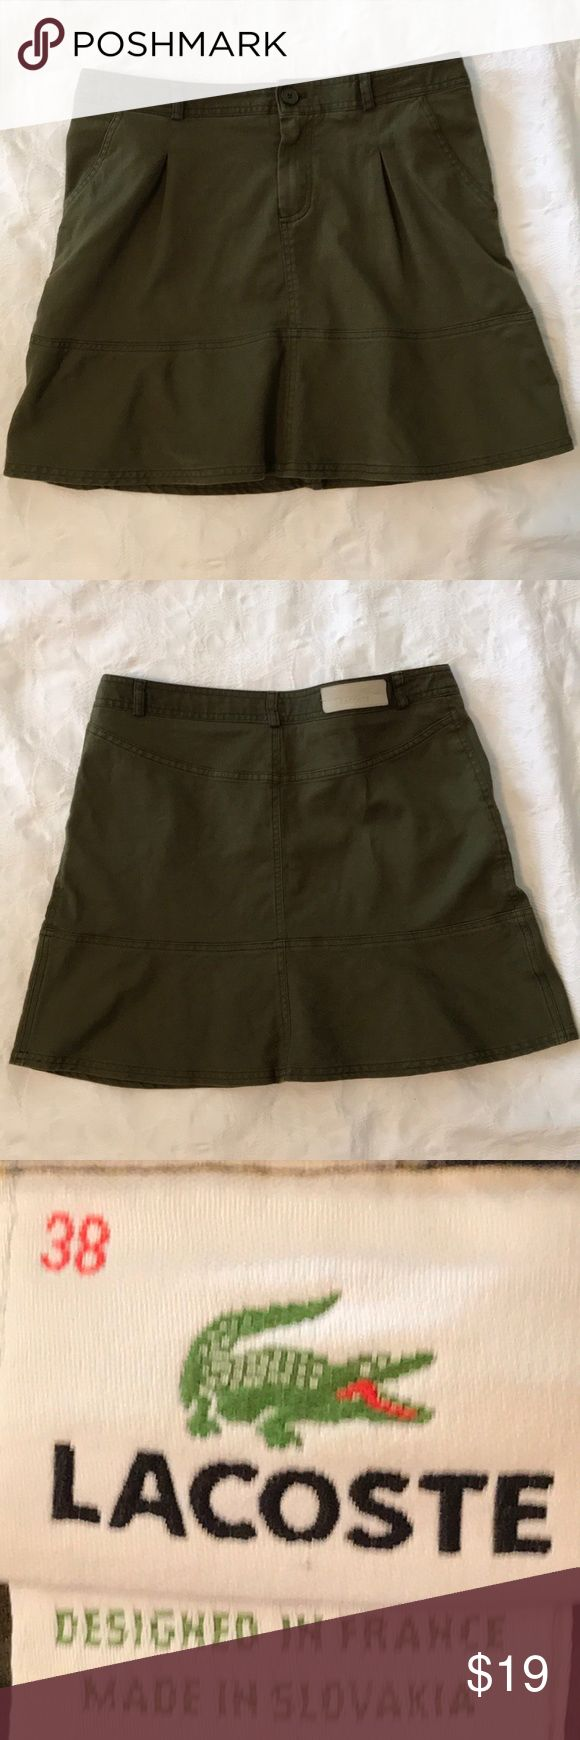 """Retro Lacoste Denim Skirt, Army Green, Size 38 Cute skirt with a slightly flared hemline. Faux pockets in front. Approx 15"""" from waist to hem, and 32"""" waist. Lacoste Skirts Mini"""